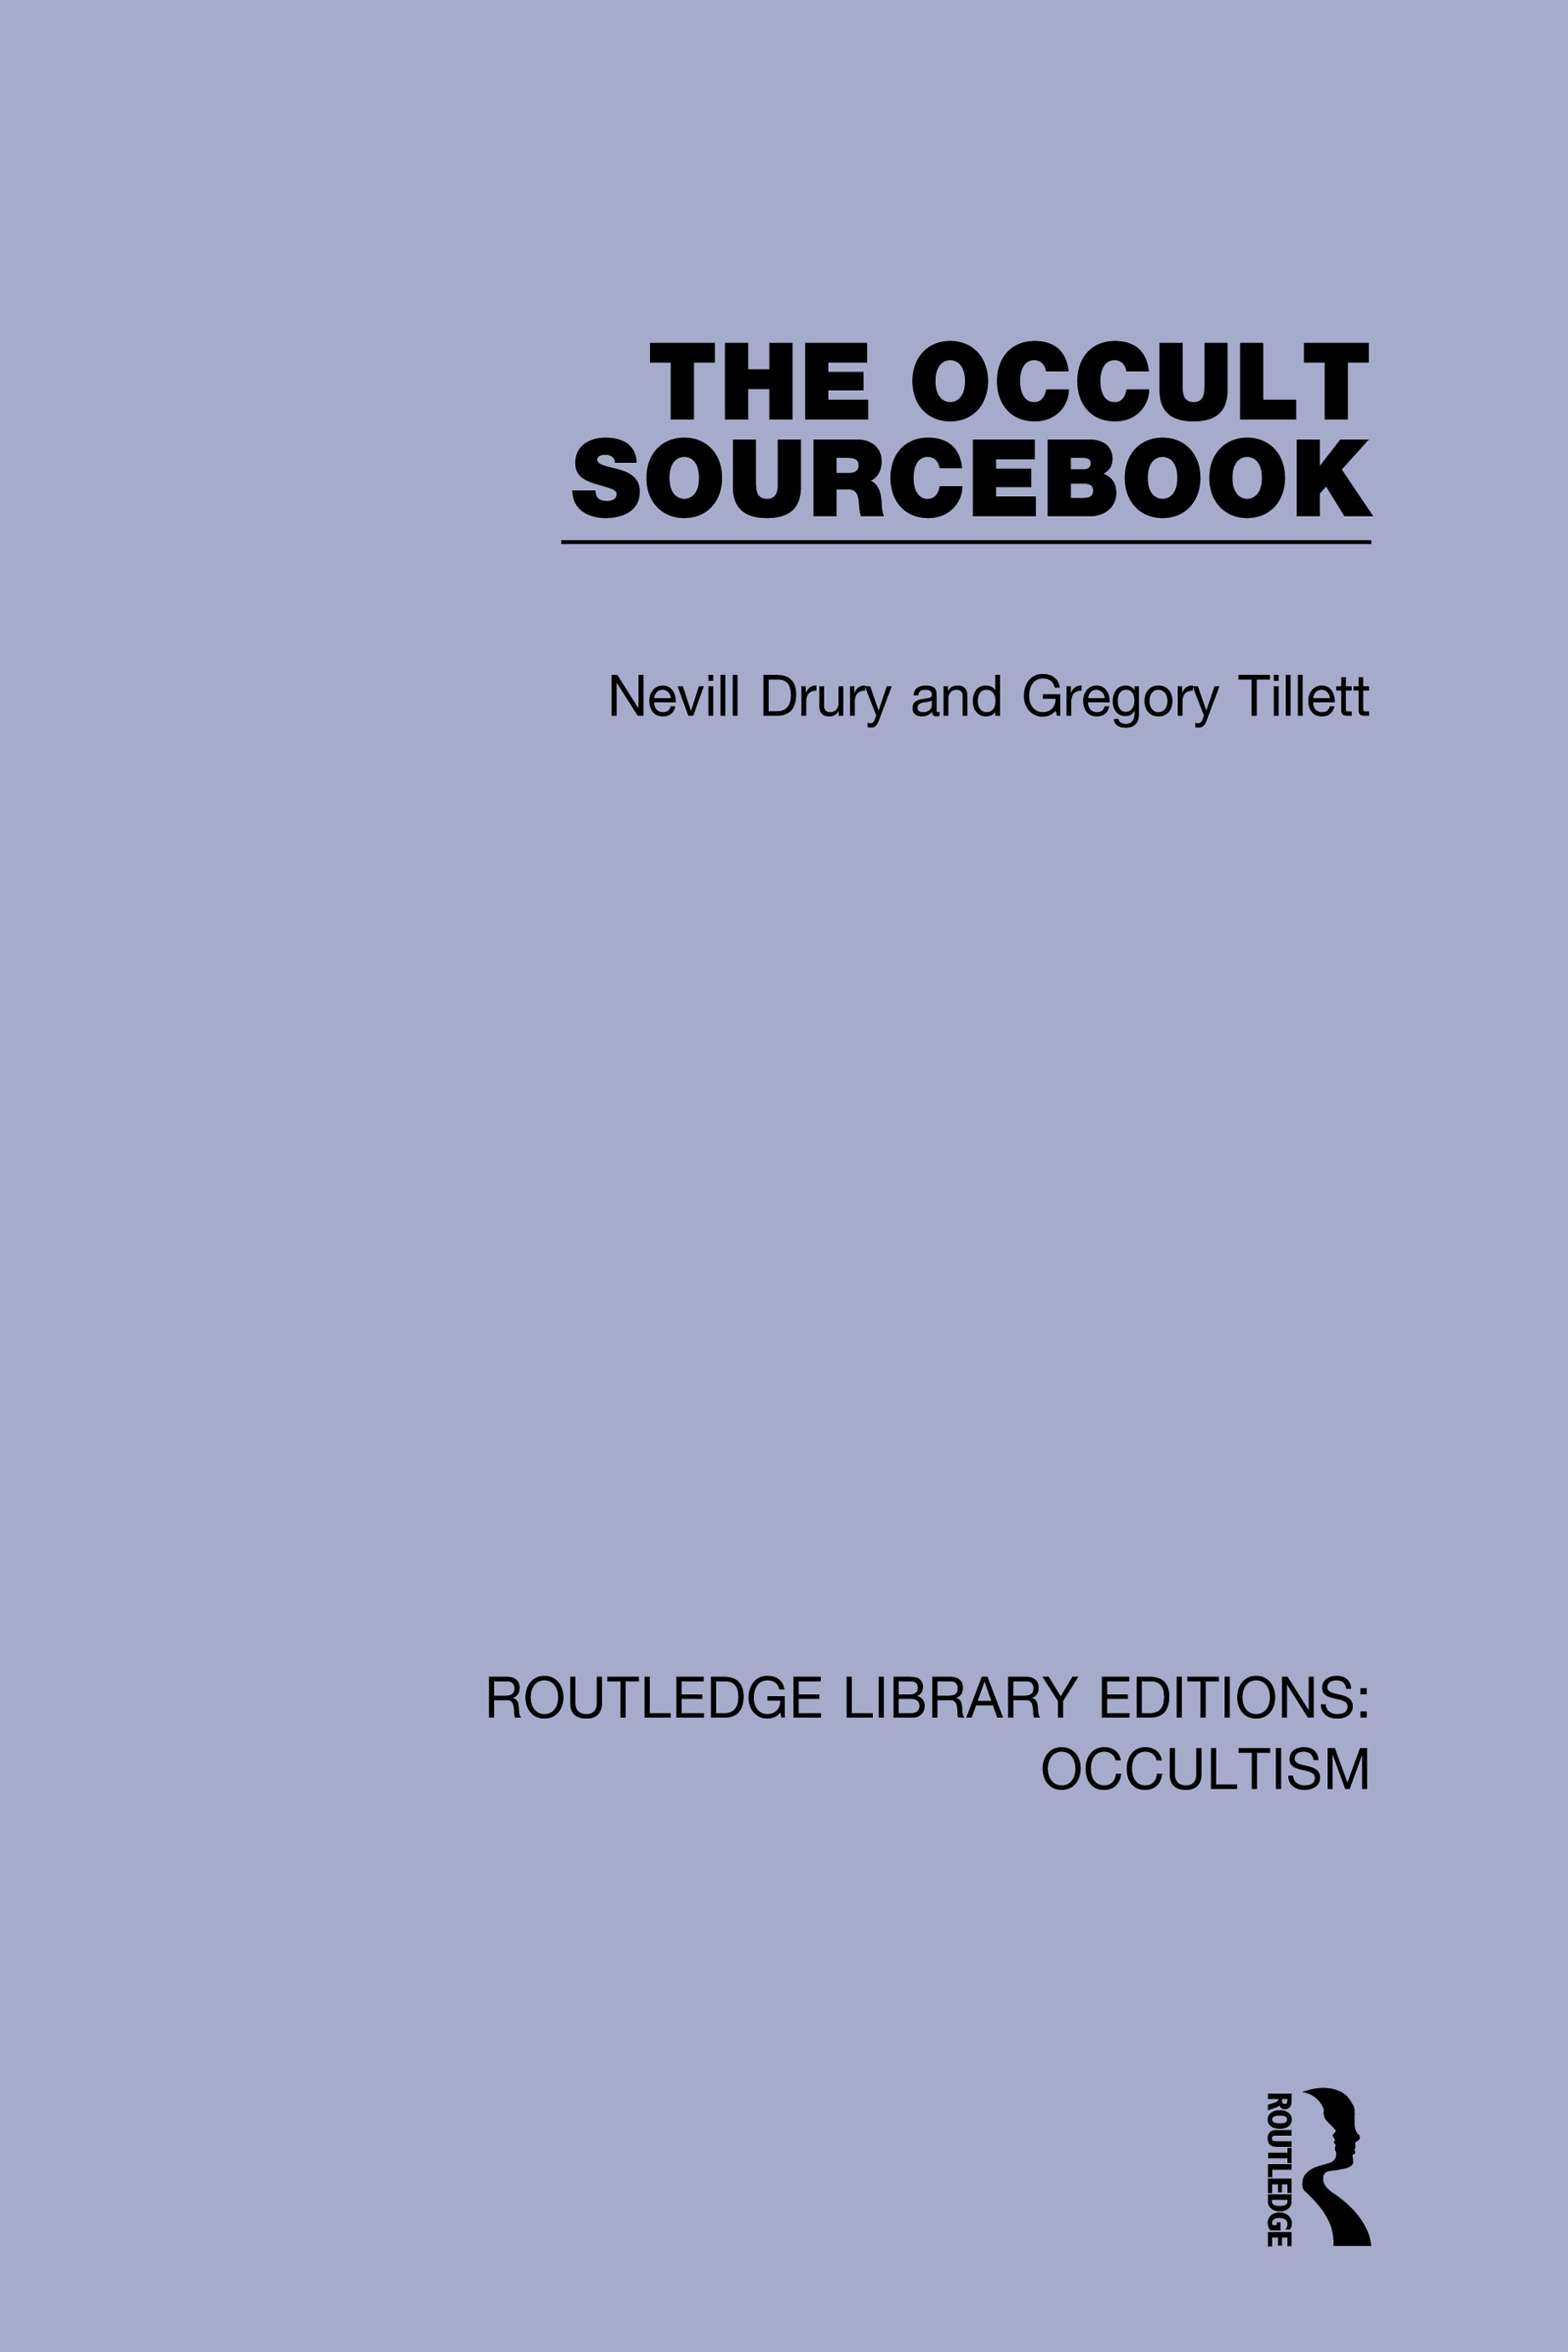 The Occult Sourcebook: 1st Edition (Hardback) - Routledge